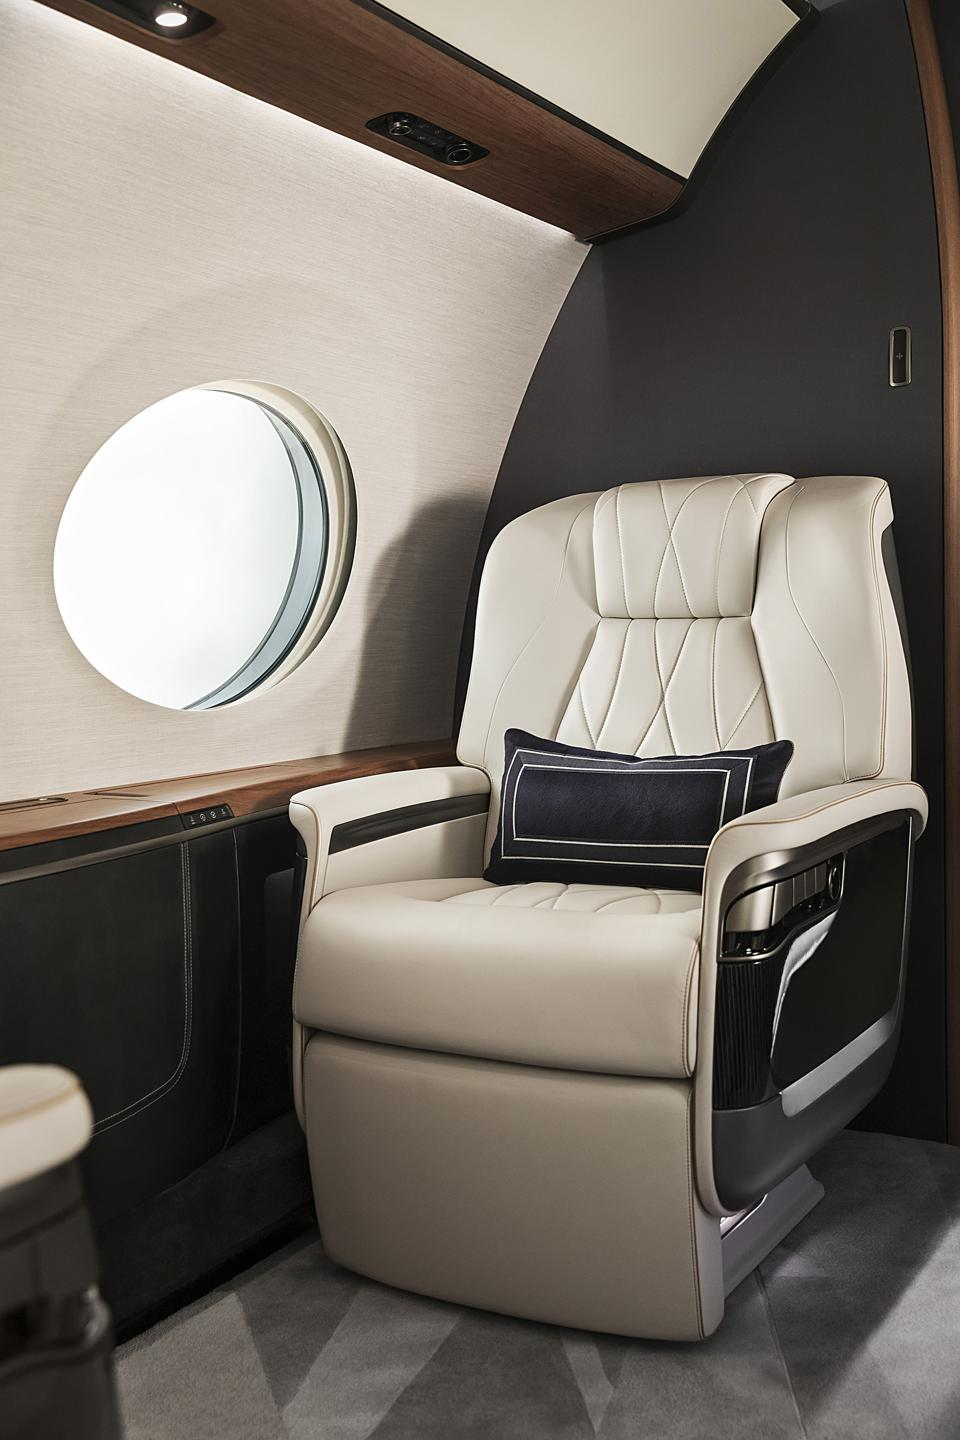 Luxurious new seating on-board the G700